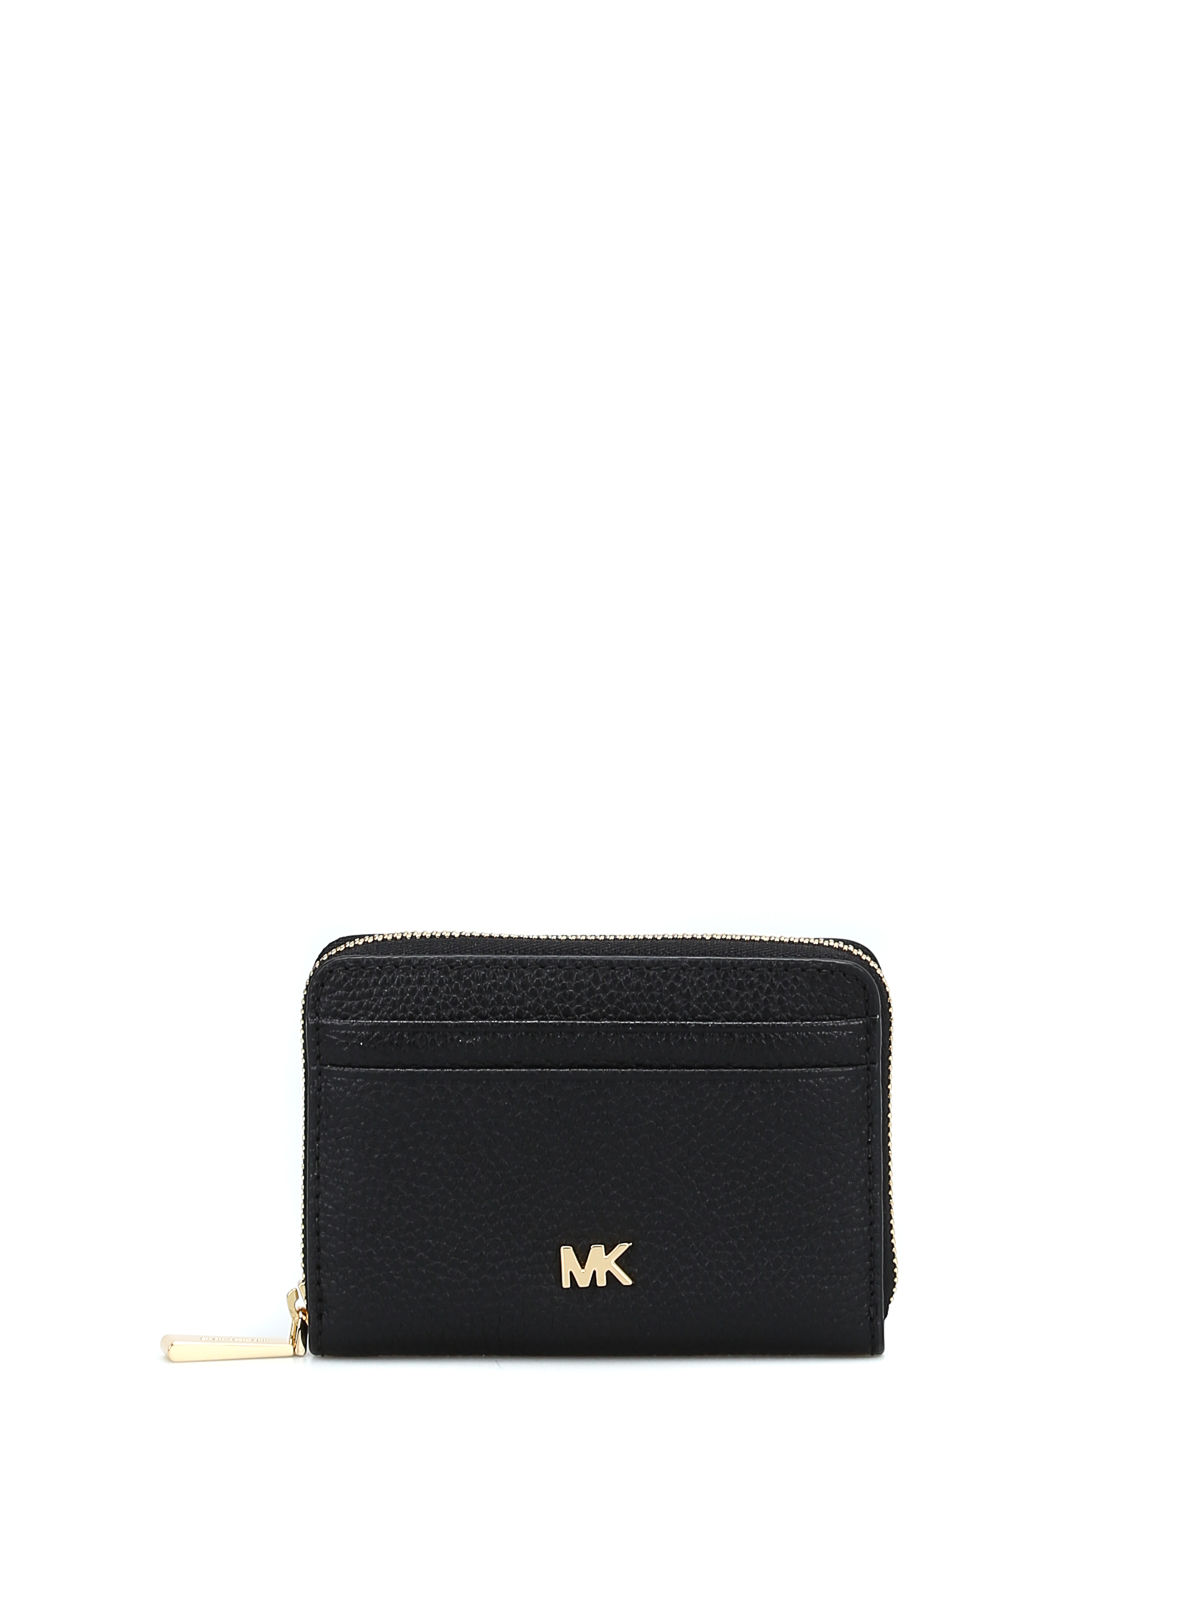 Michael Kors Portacarte Money Pieces nero portafogli